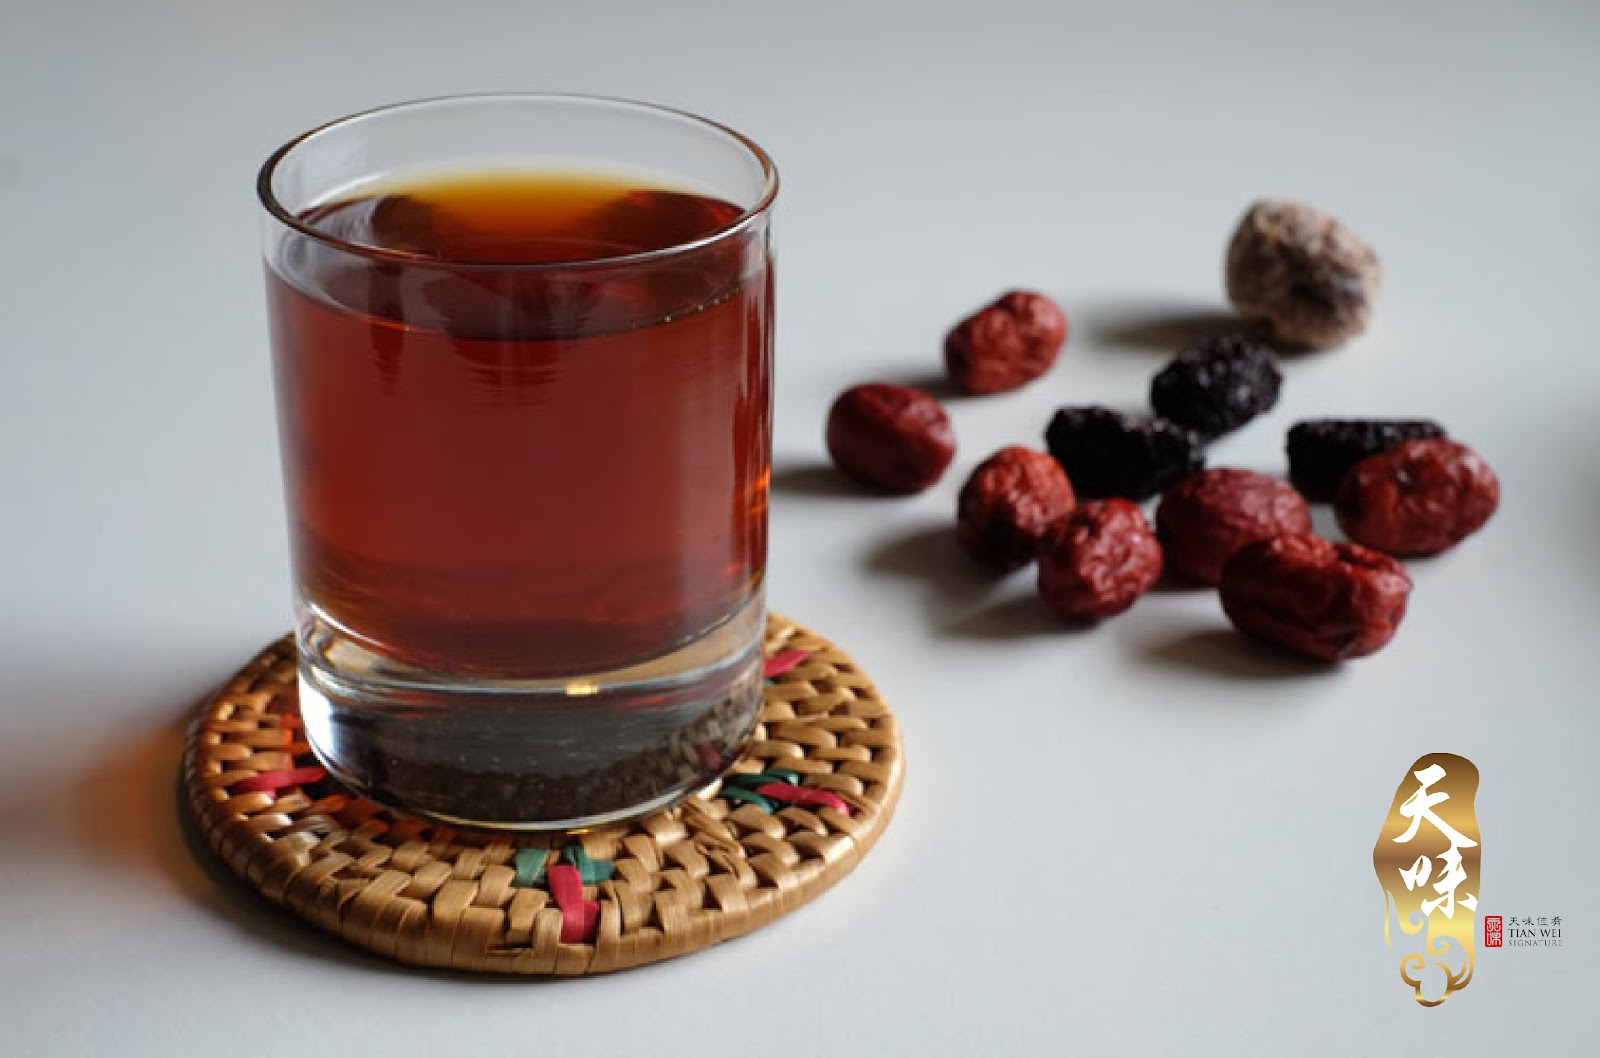 Red Dates Longan Tea